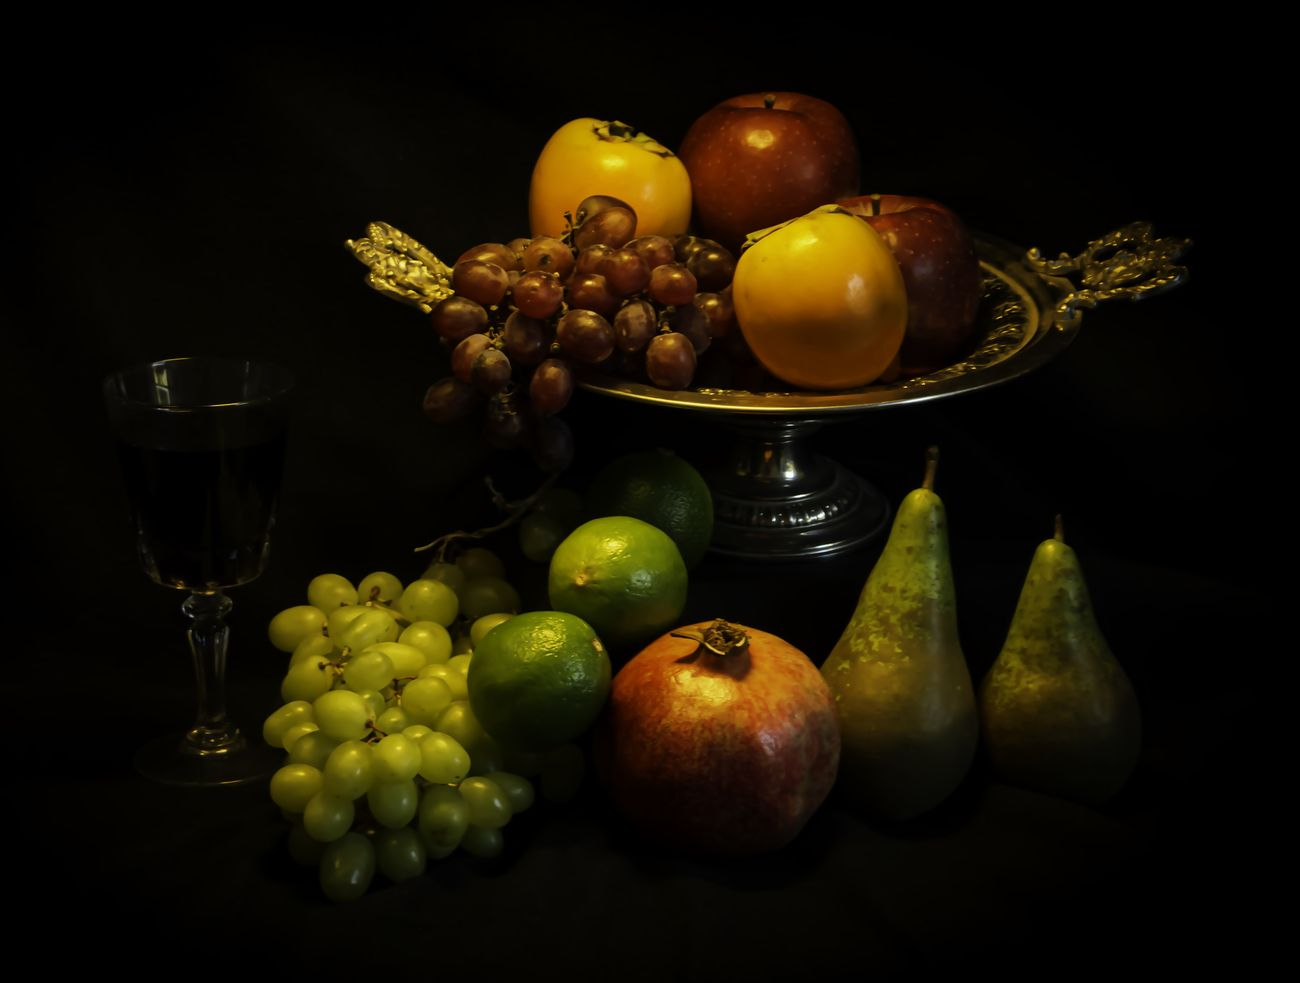 Still life with fruits in an antic bowl and a glass of red wine against black background